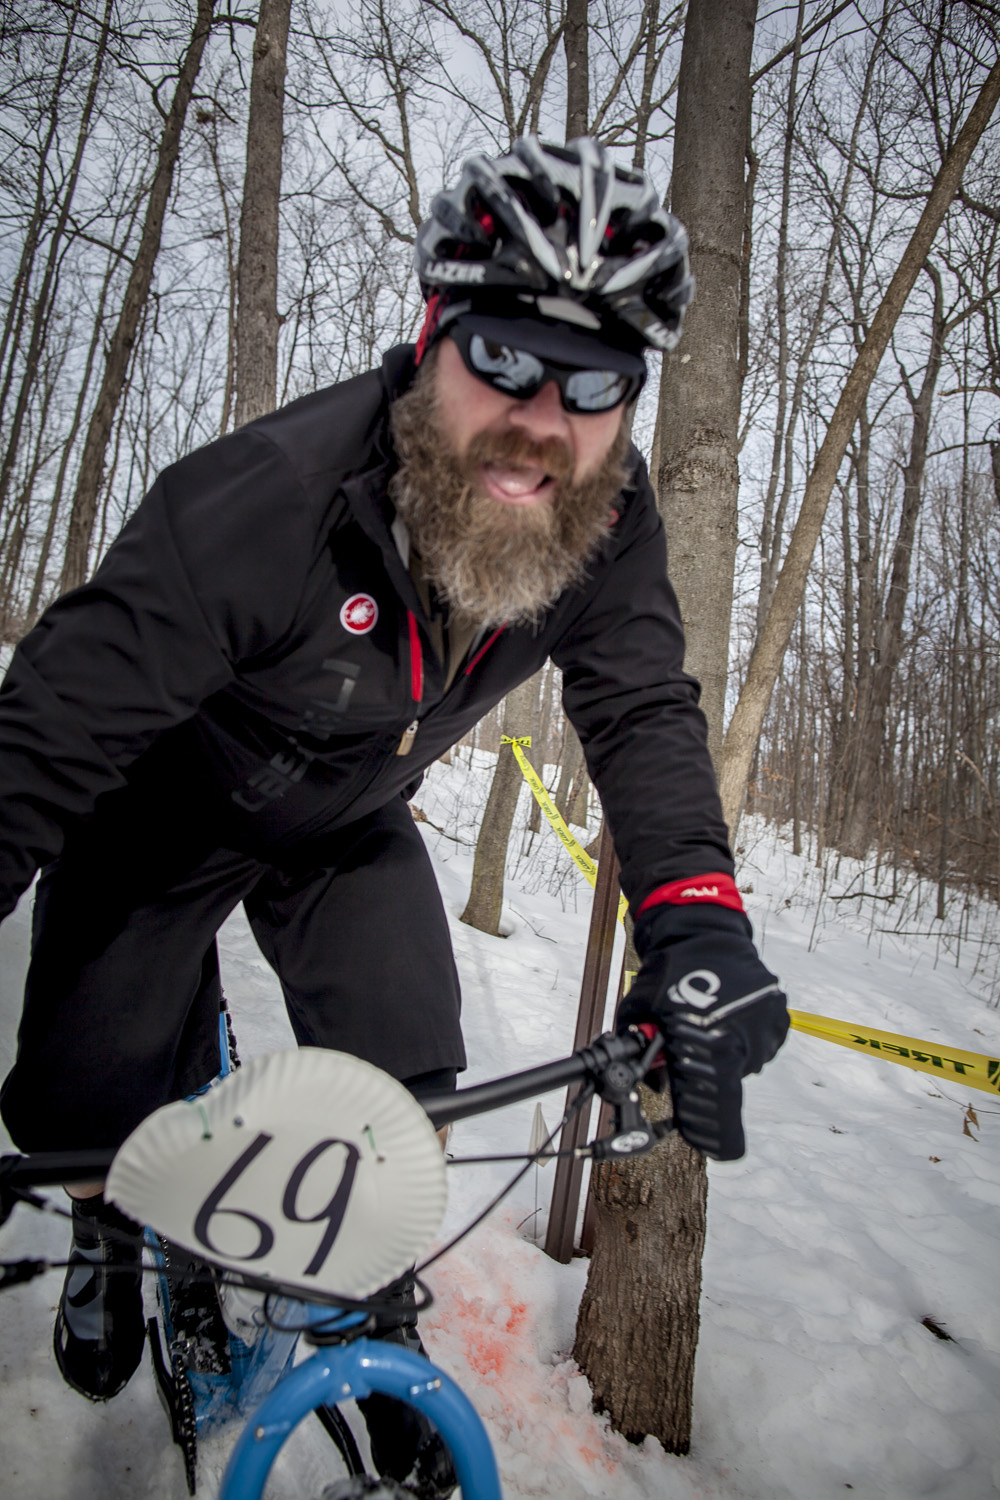 Lumberjackian styles are prevelant at fat bike races.